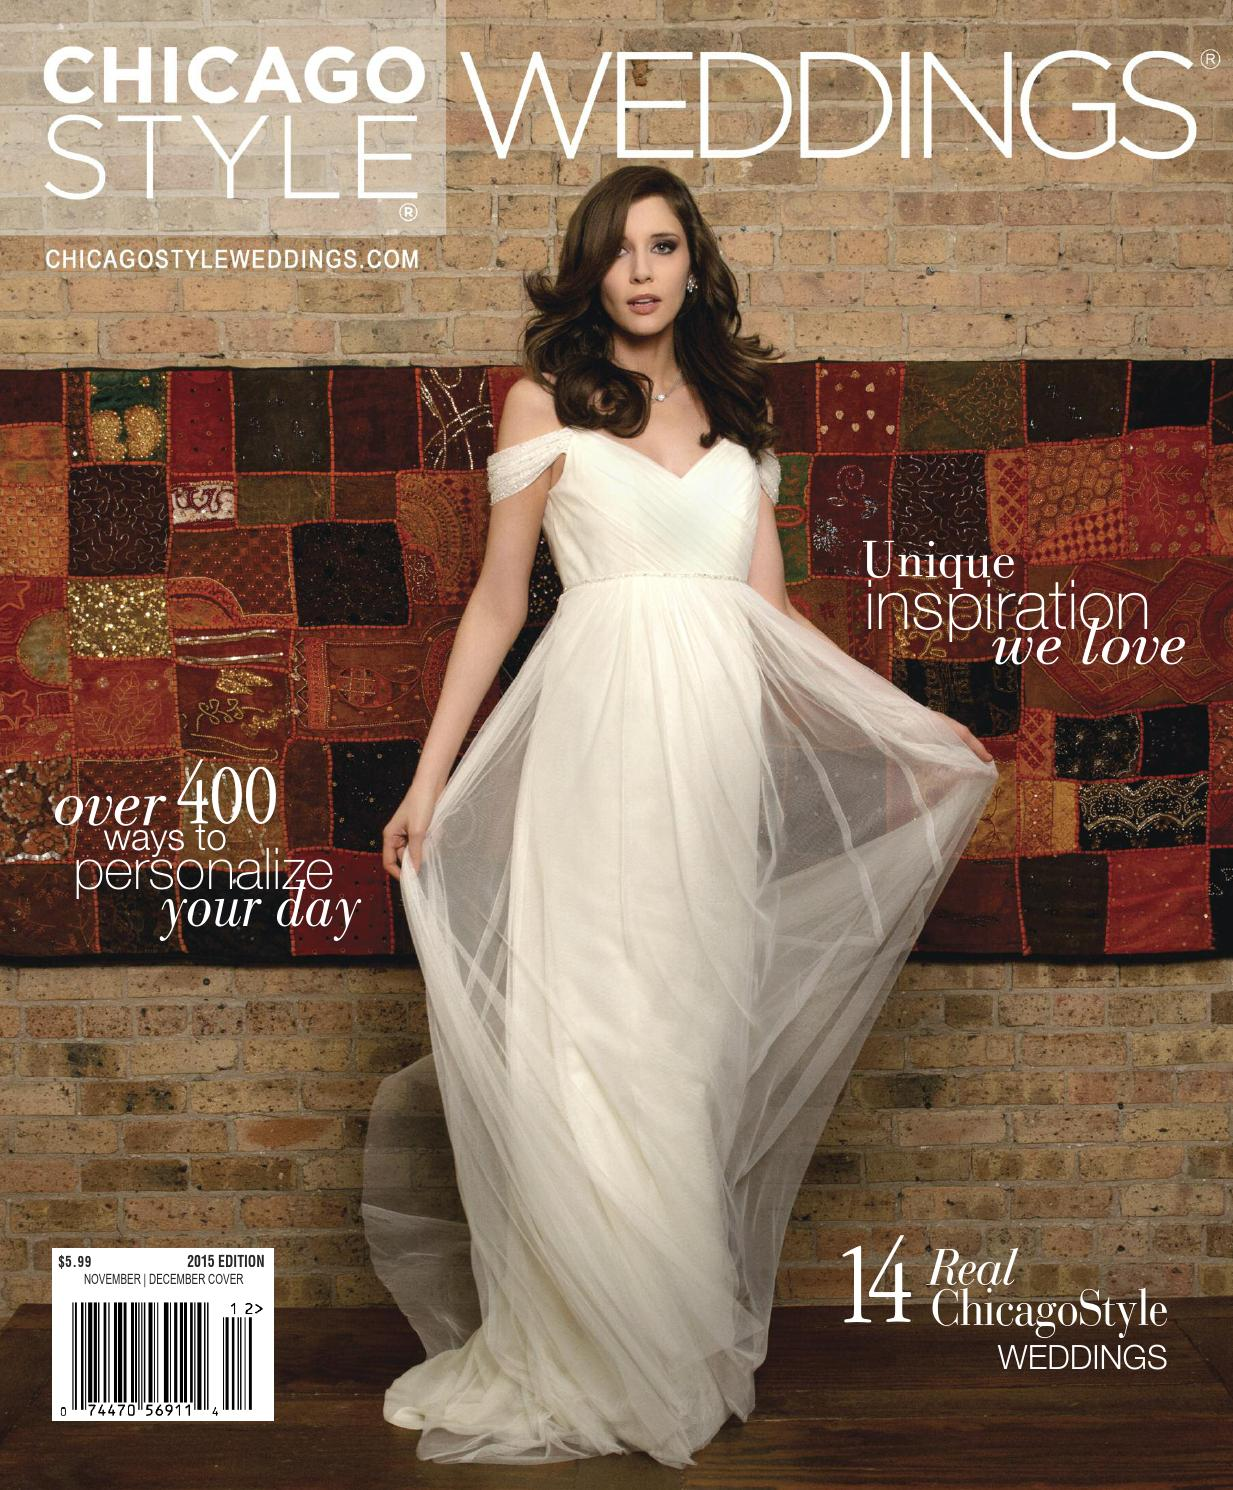 fb6bc45b40a ChicagoStyle Weddings by ChicagoStyle Weddings - issuu